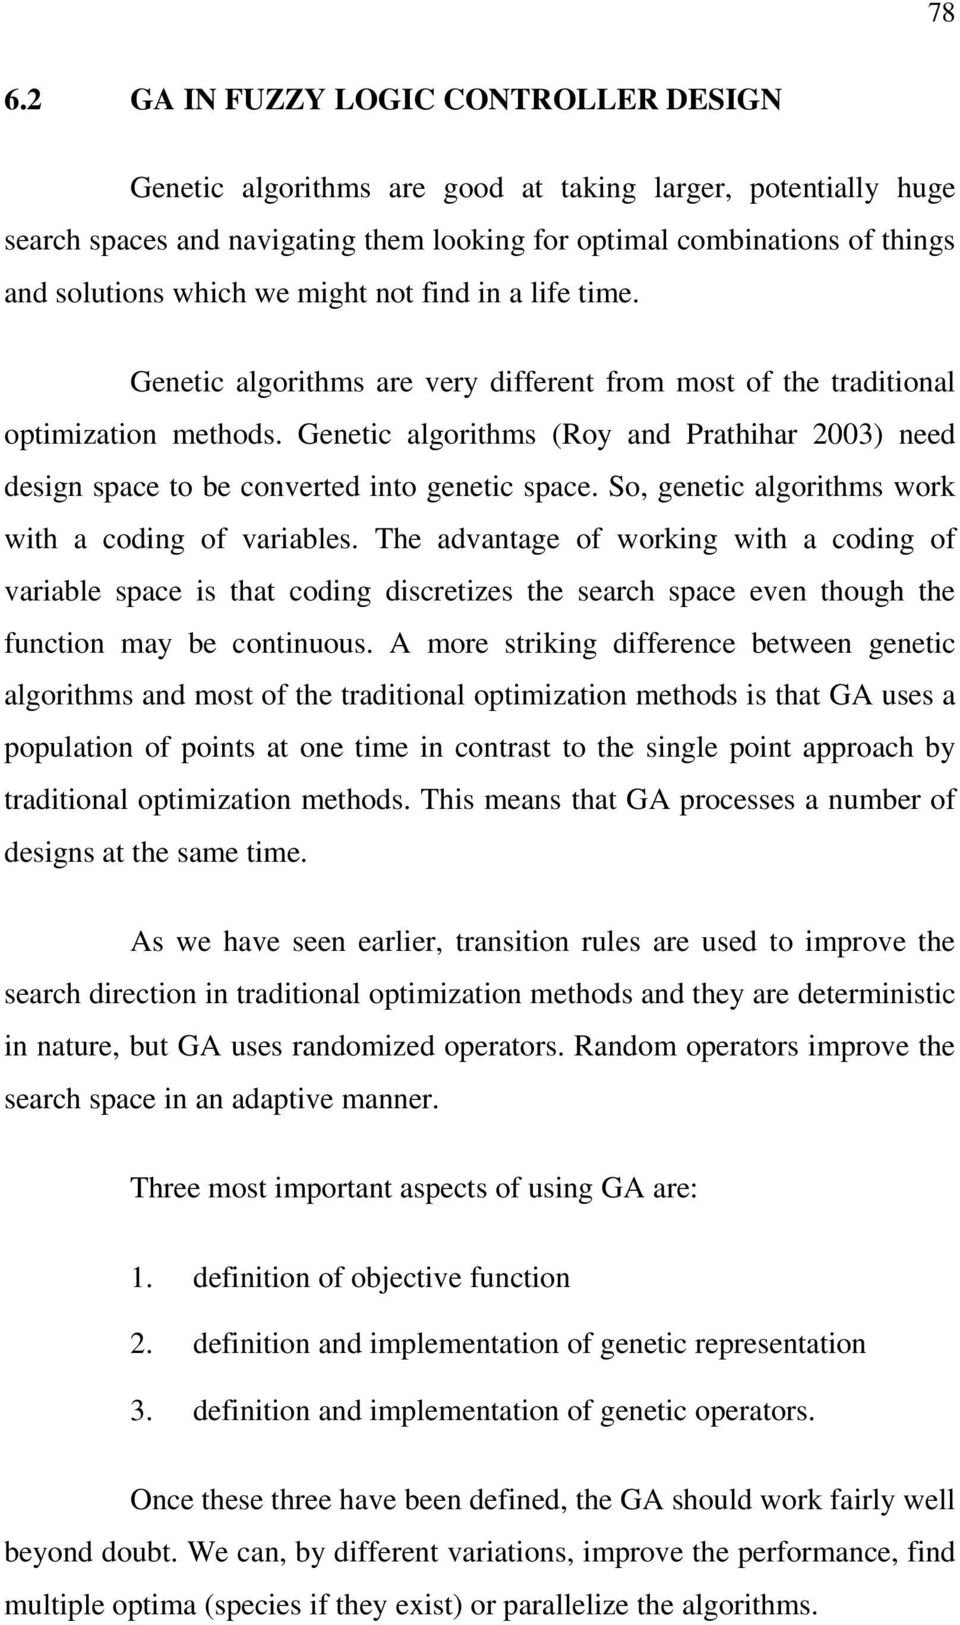 Genetic algorithms (Roy and Prathihar 2003) need design space to be converted into genetic space. So, genetic algorithms work with a coding of variables.